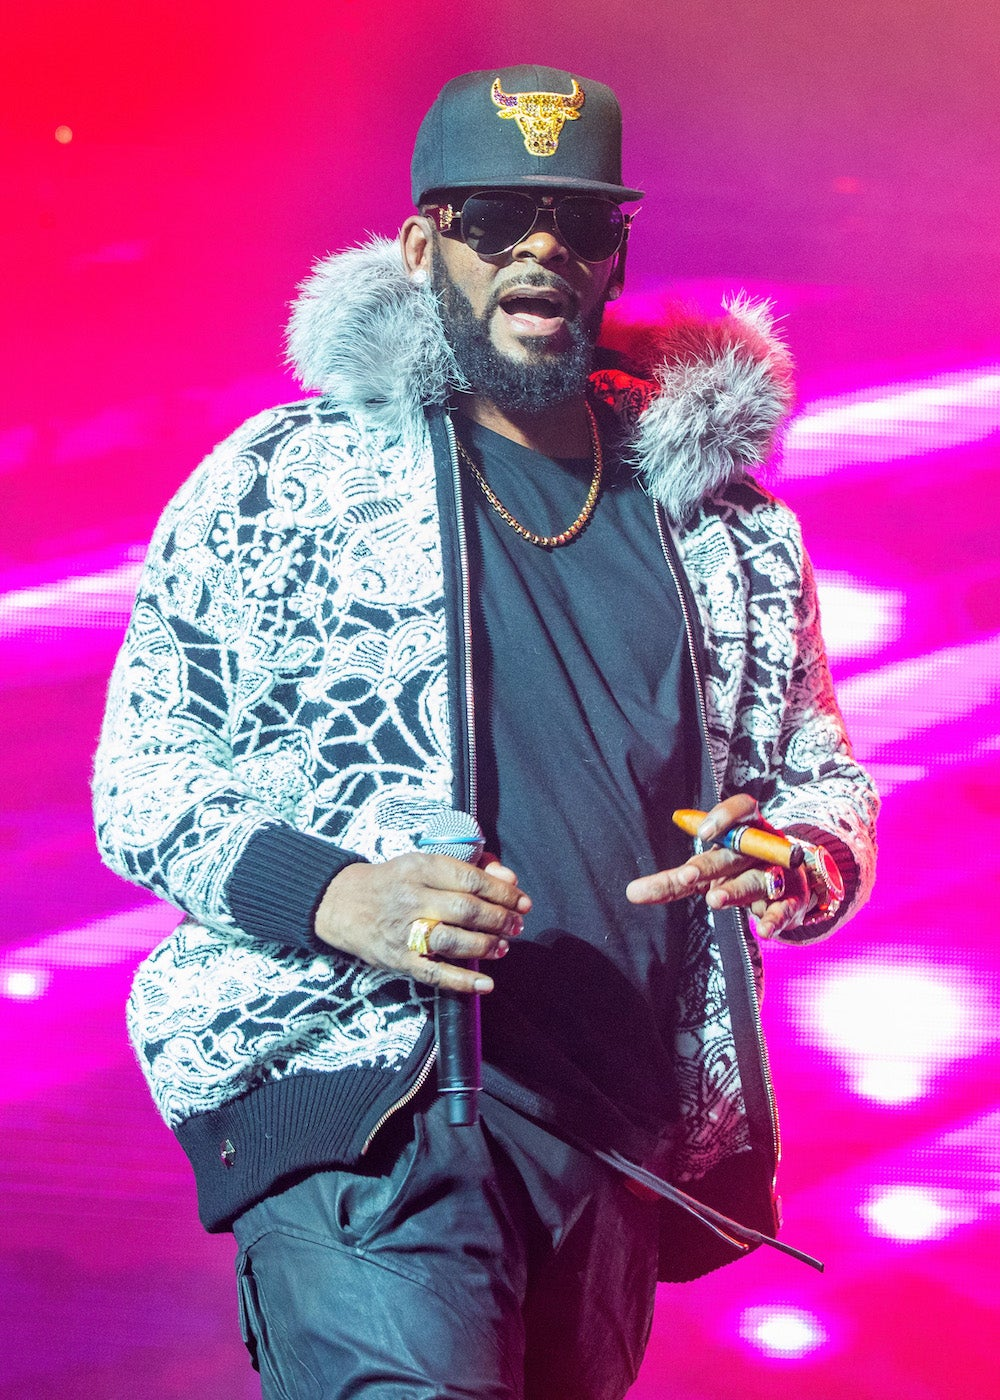 Isn't It About Time R. Kelly's Record Label Drops Him?